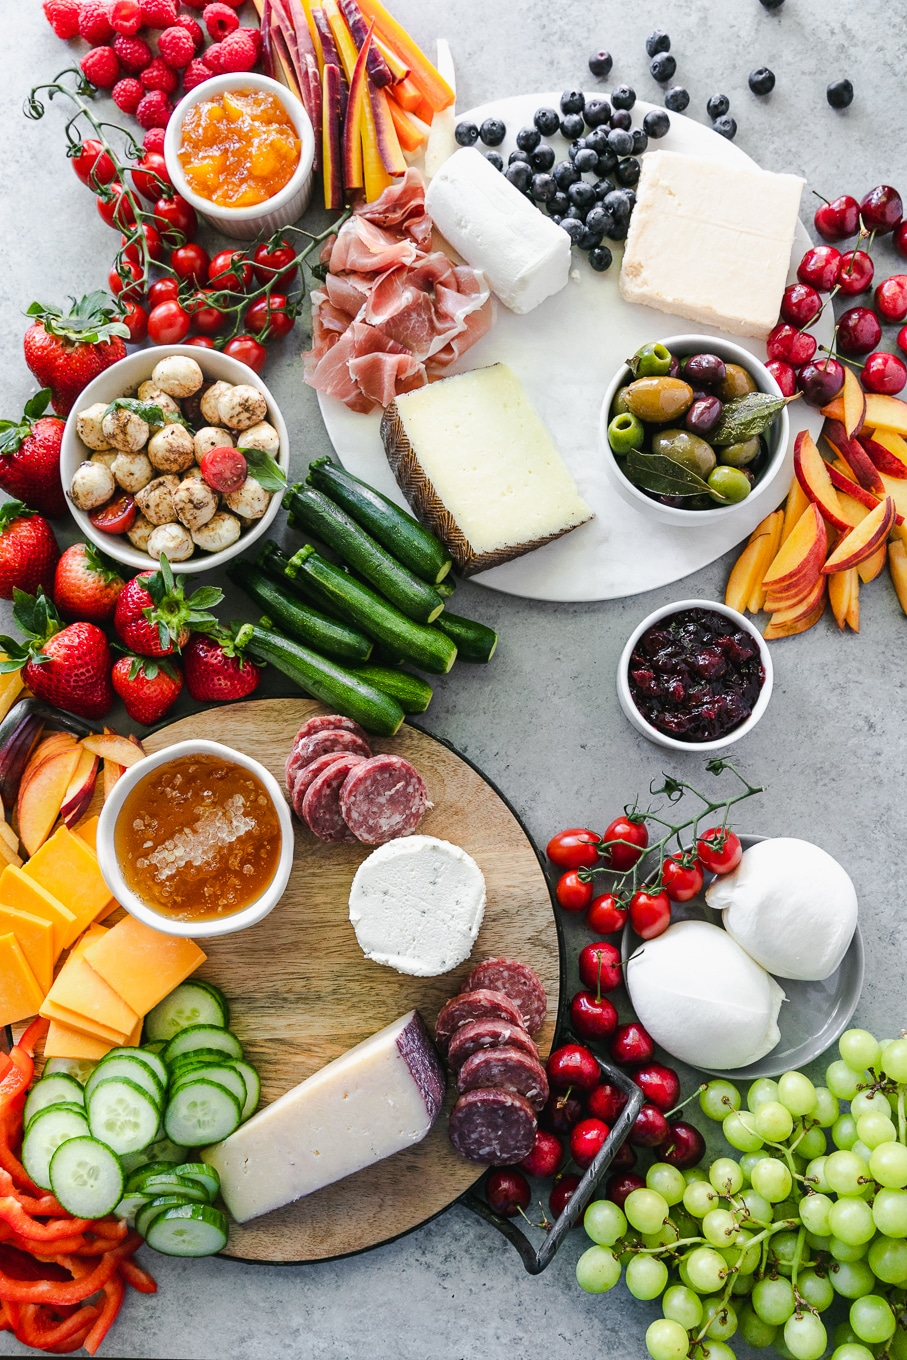 Overhead shot of cheeses, salami, fruit, and vegetables